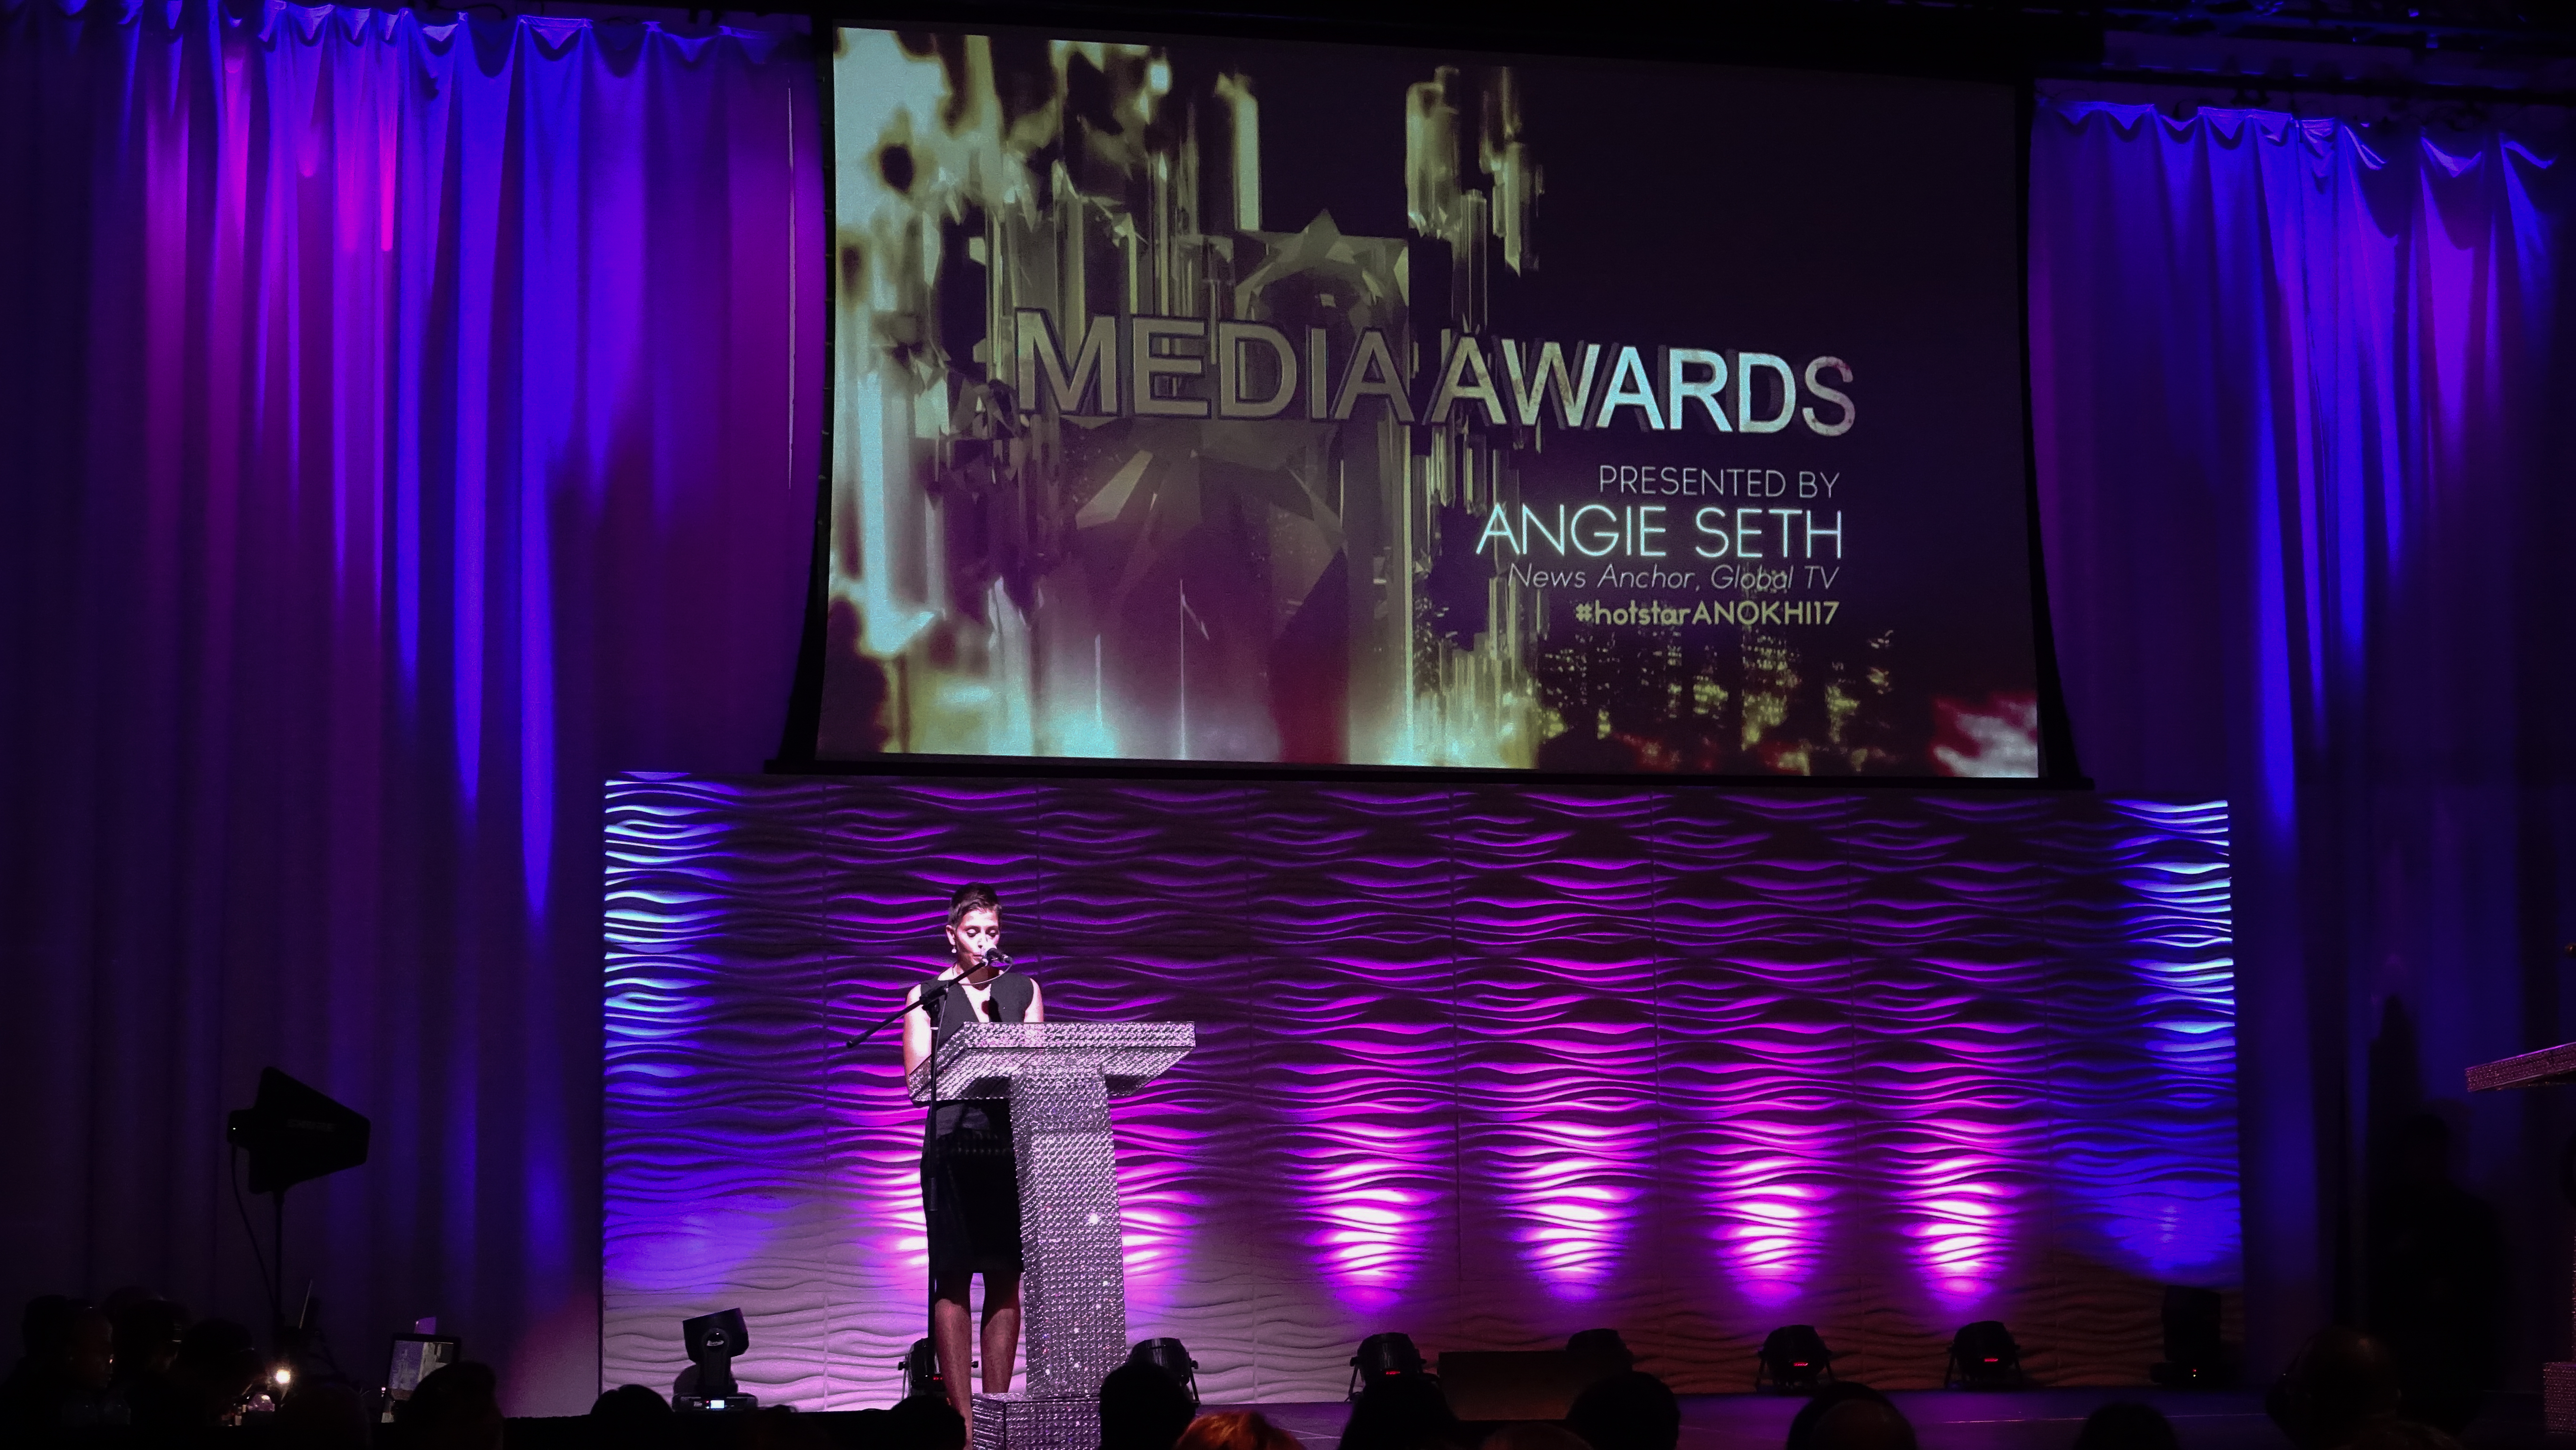 Host Angie Seth, Presenting The Media Awards